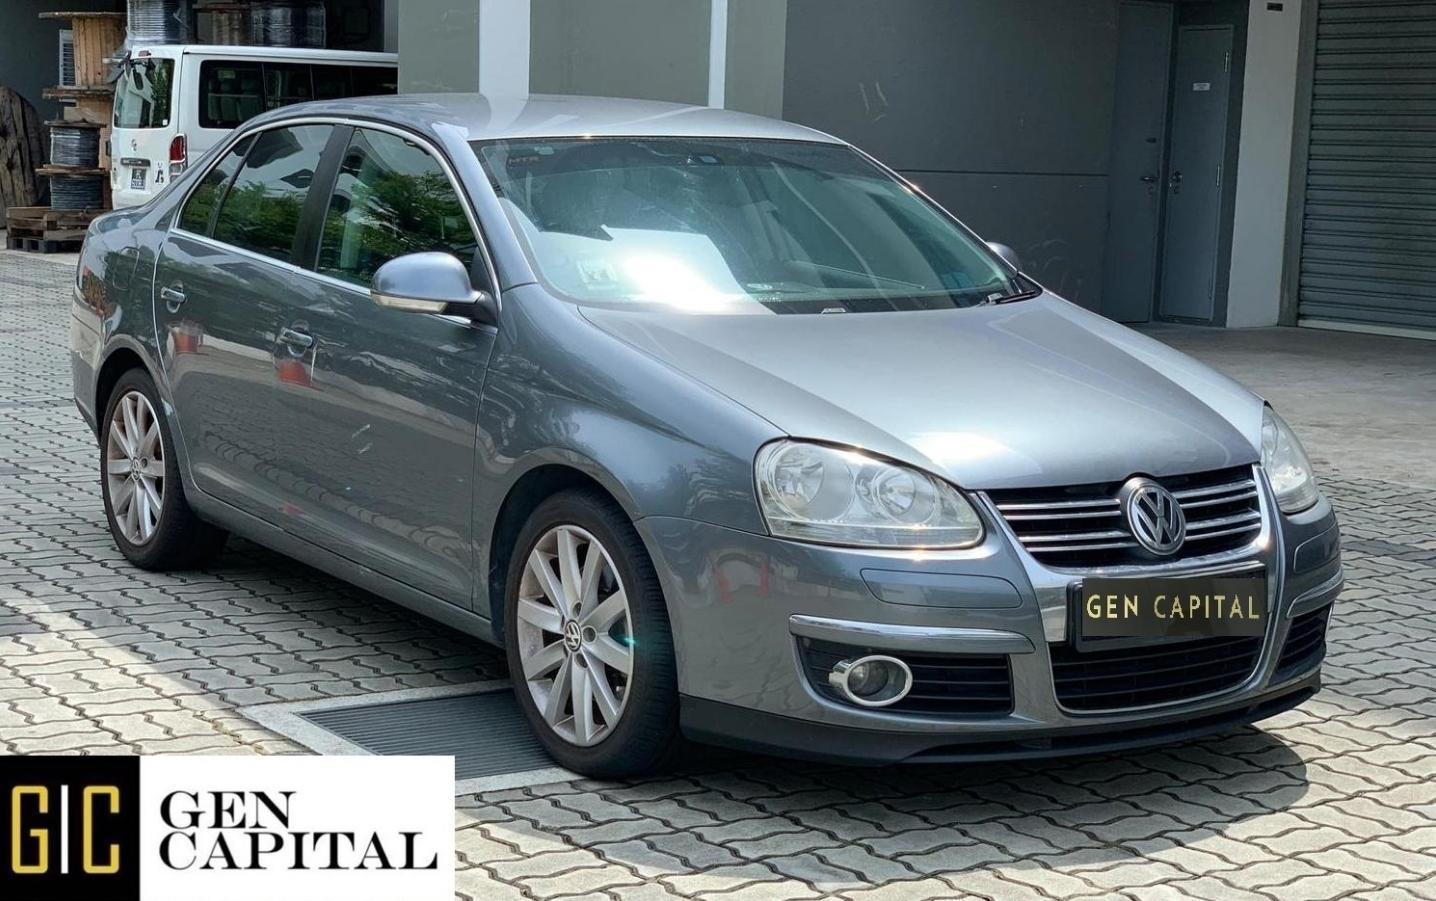 Volkswagen Jetta 1.4A TSI @ Cheapest rates, full support!